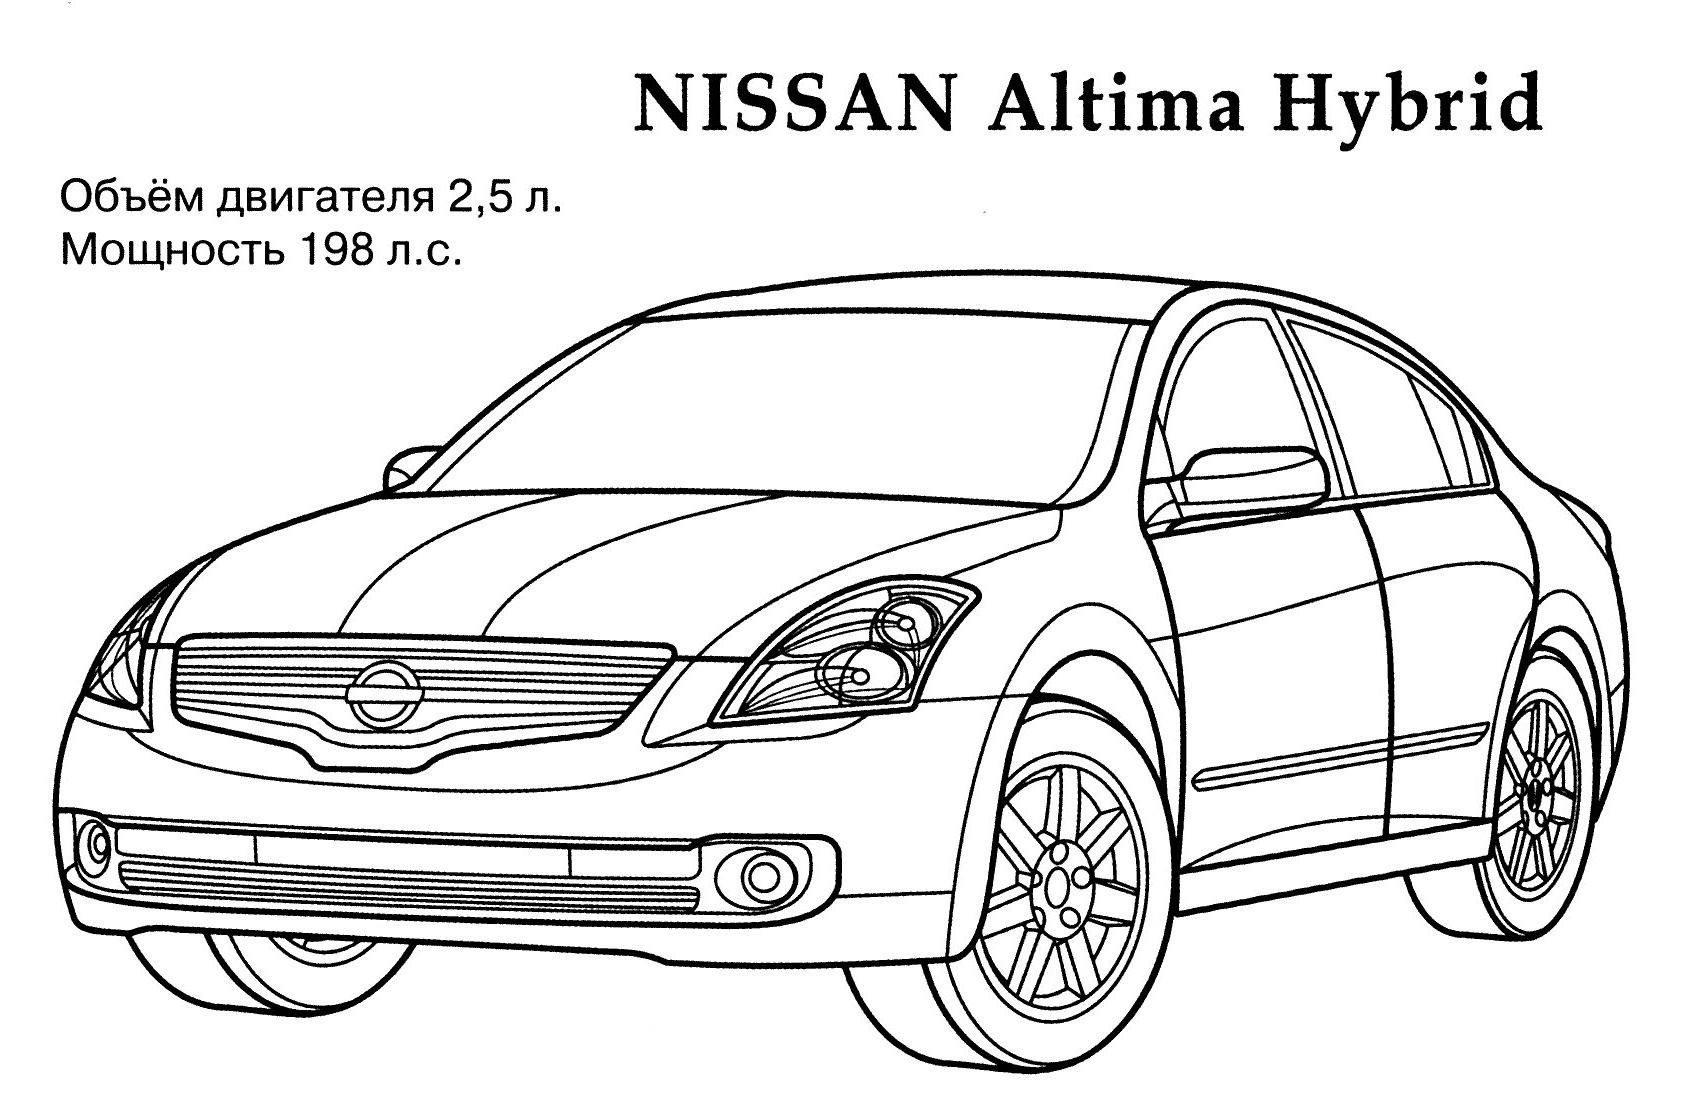 350z coloring pages super car nissan 350z coloring page cool car printable free